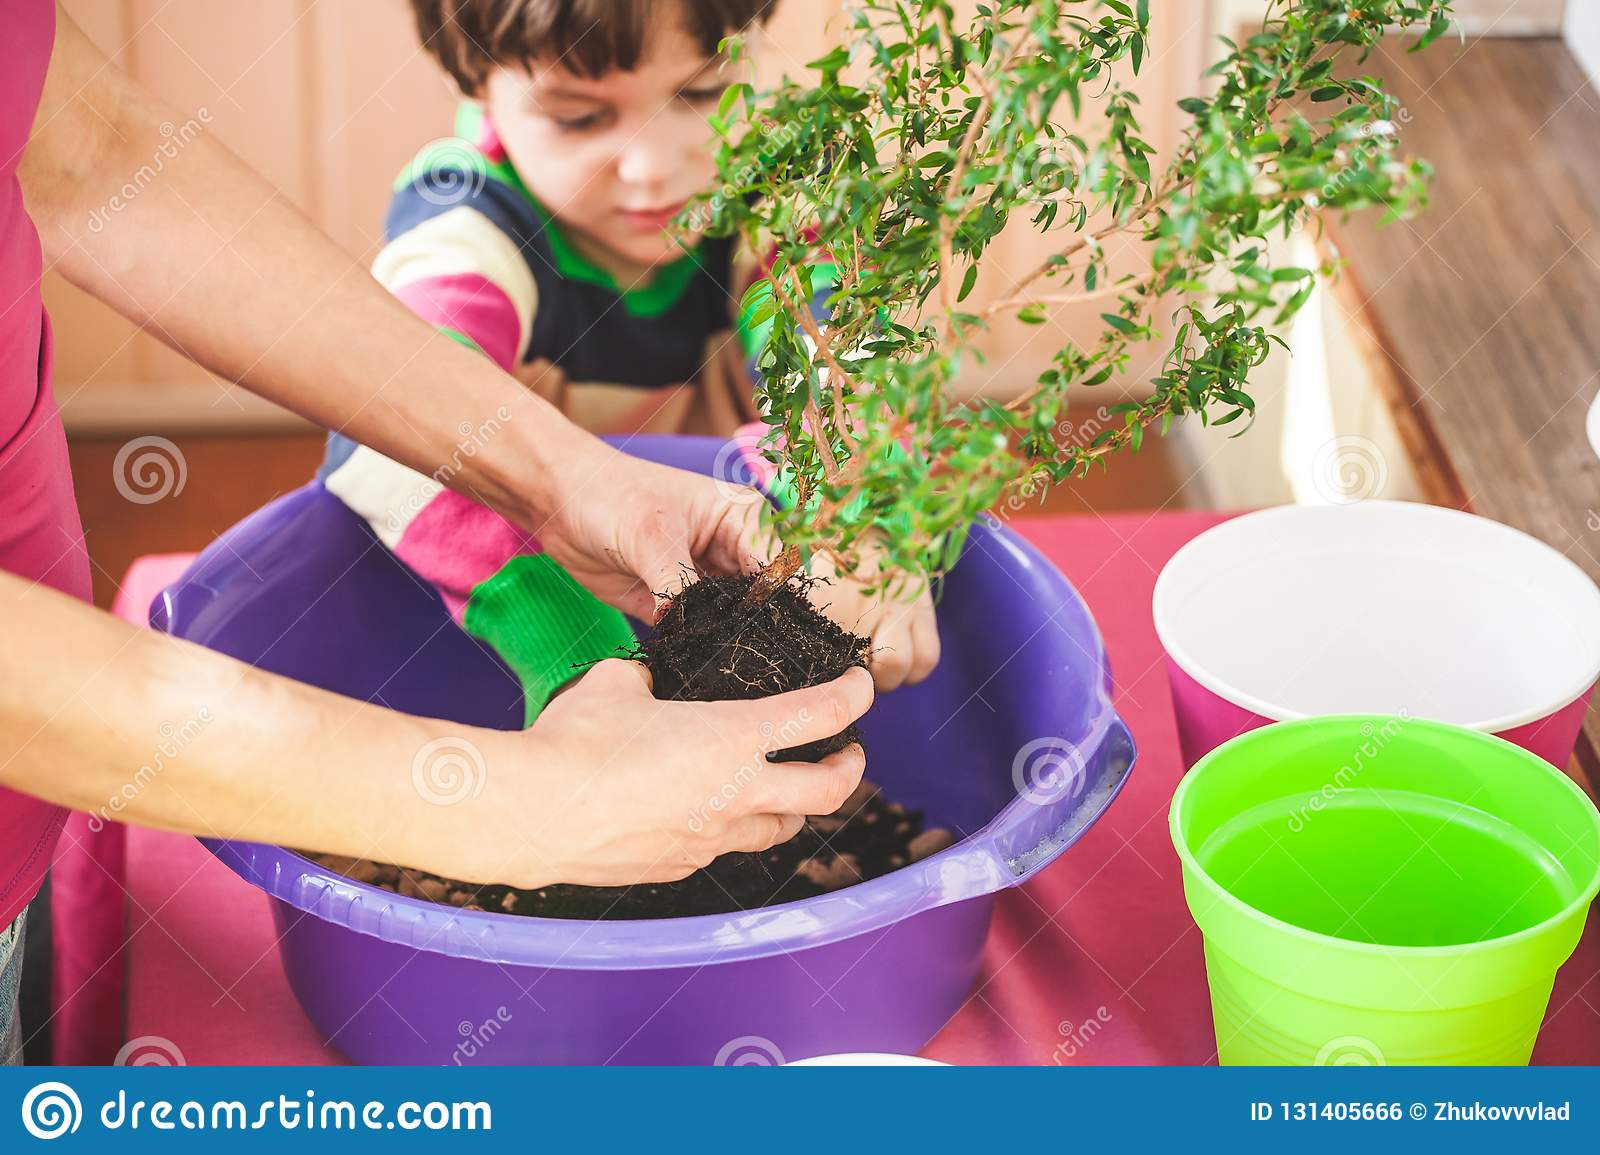 Replanting Home Flowers  The Boy Helps His Mother To Plant